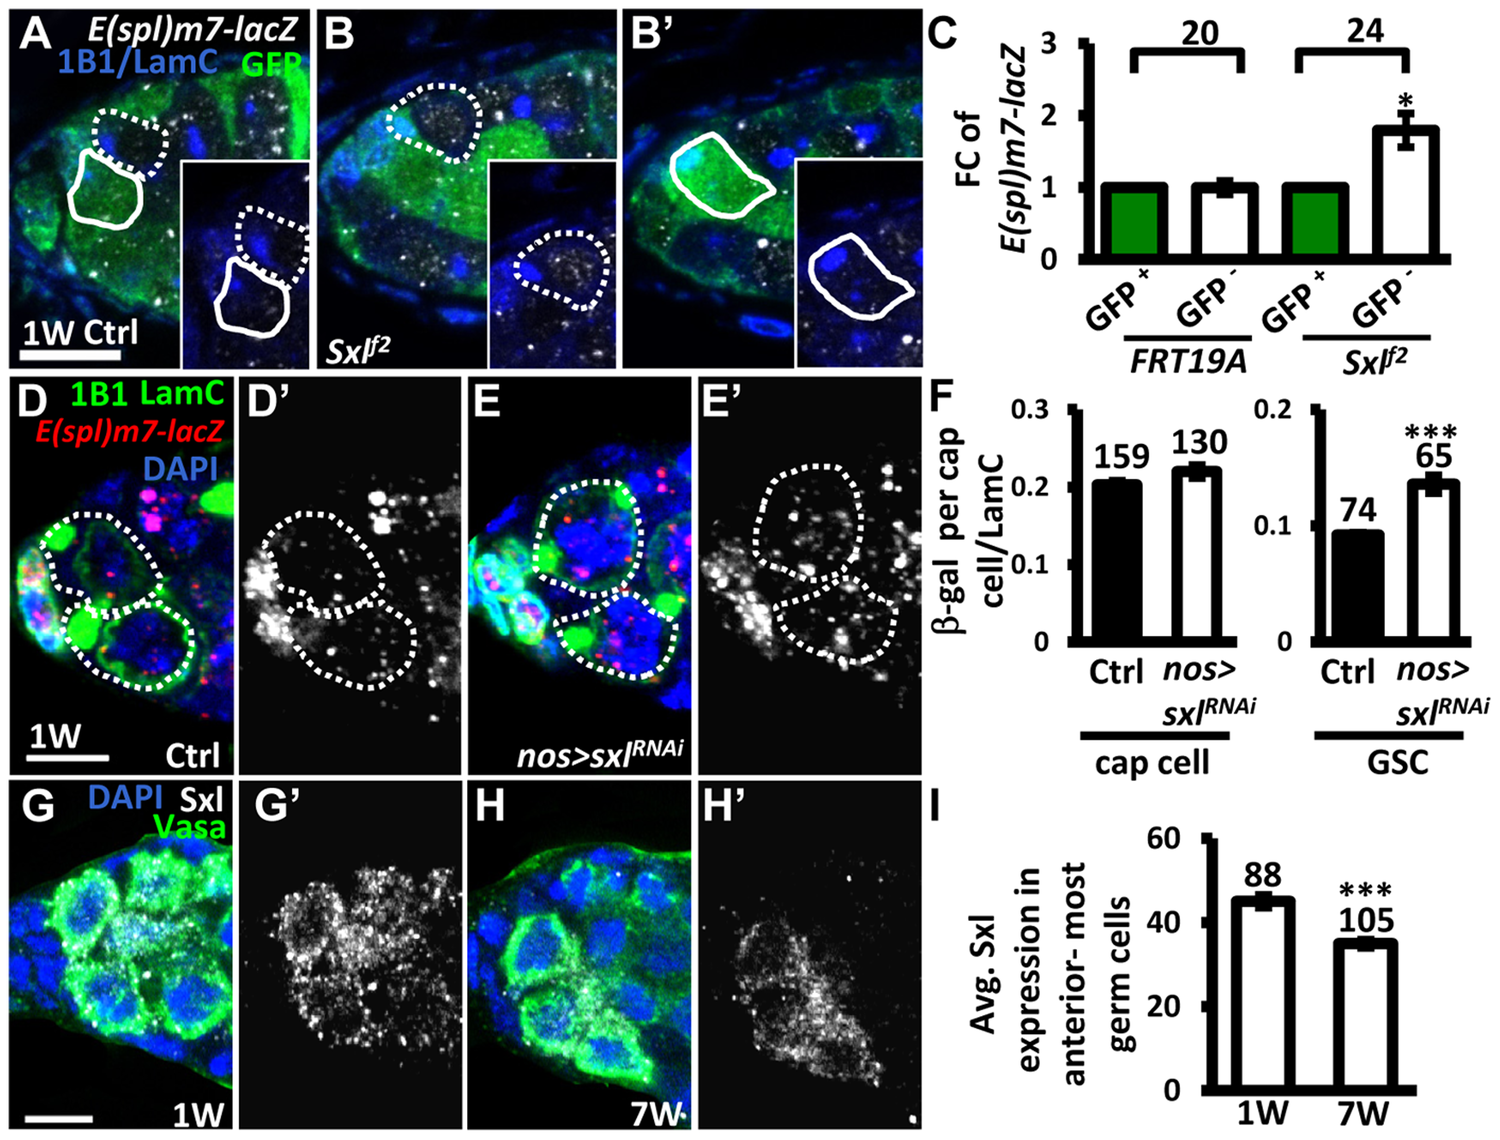 Sxl negatively regulates Notch signaling in GSCs, and its expression is reduced in GSCs with age.